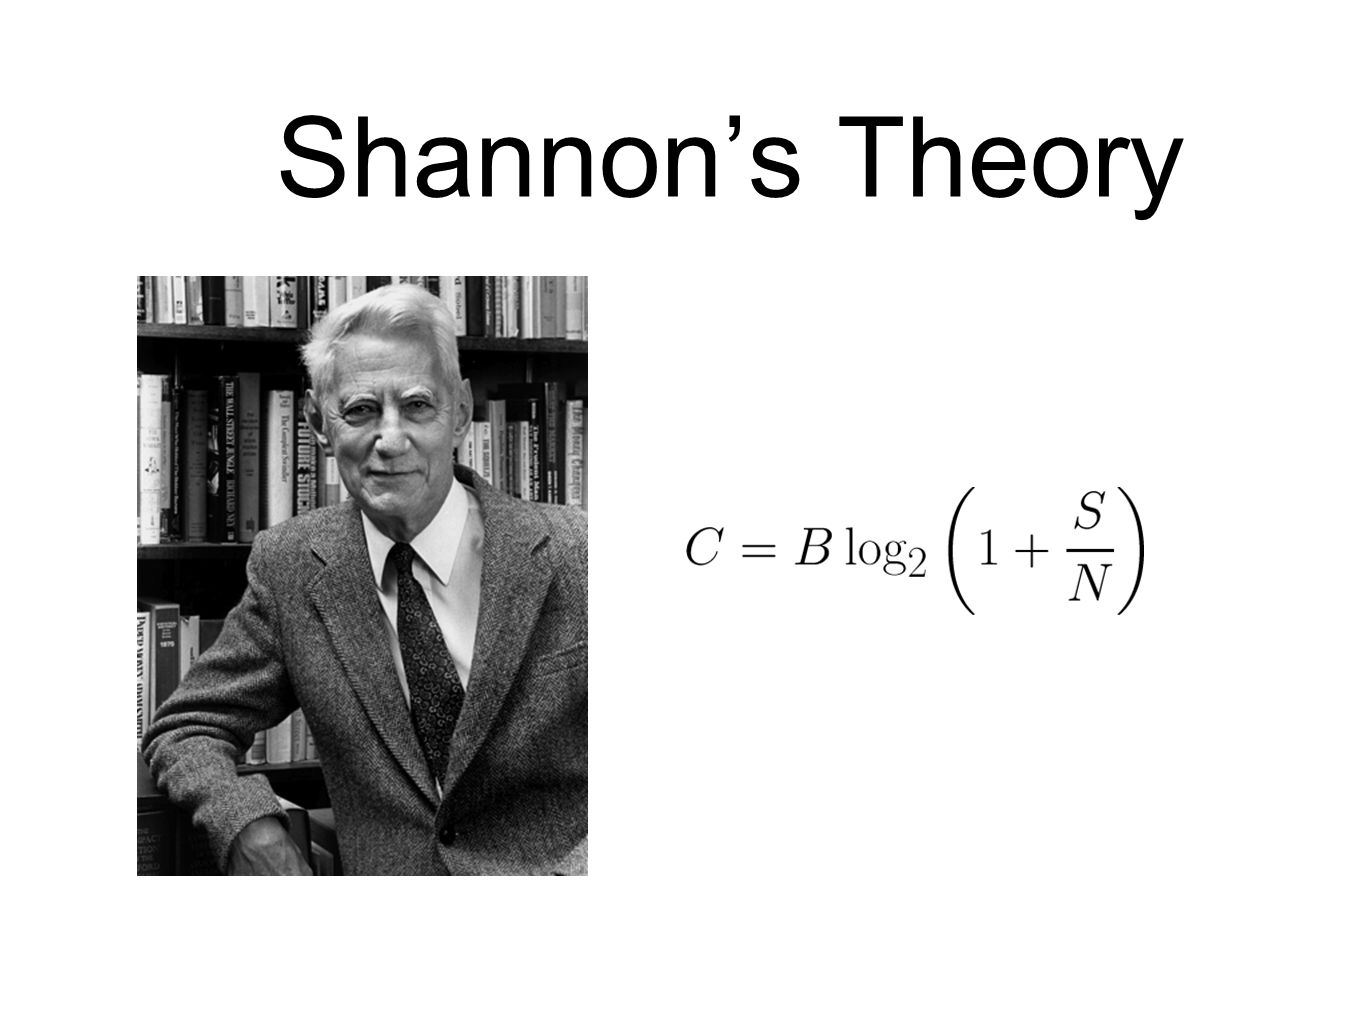 Shannon's Theory